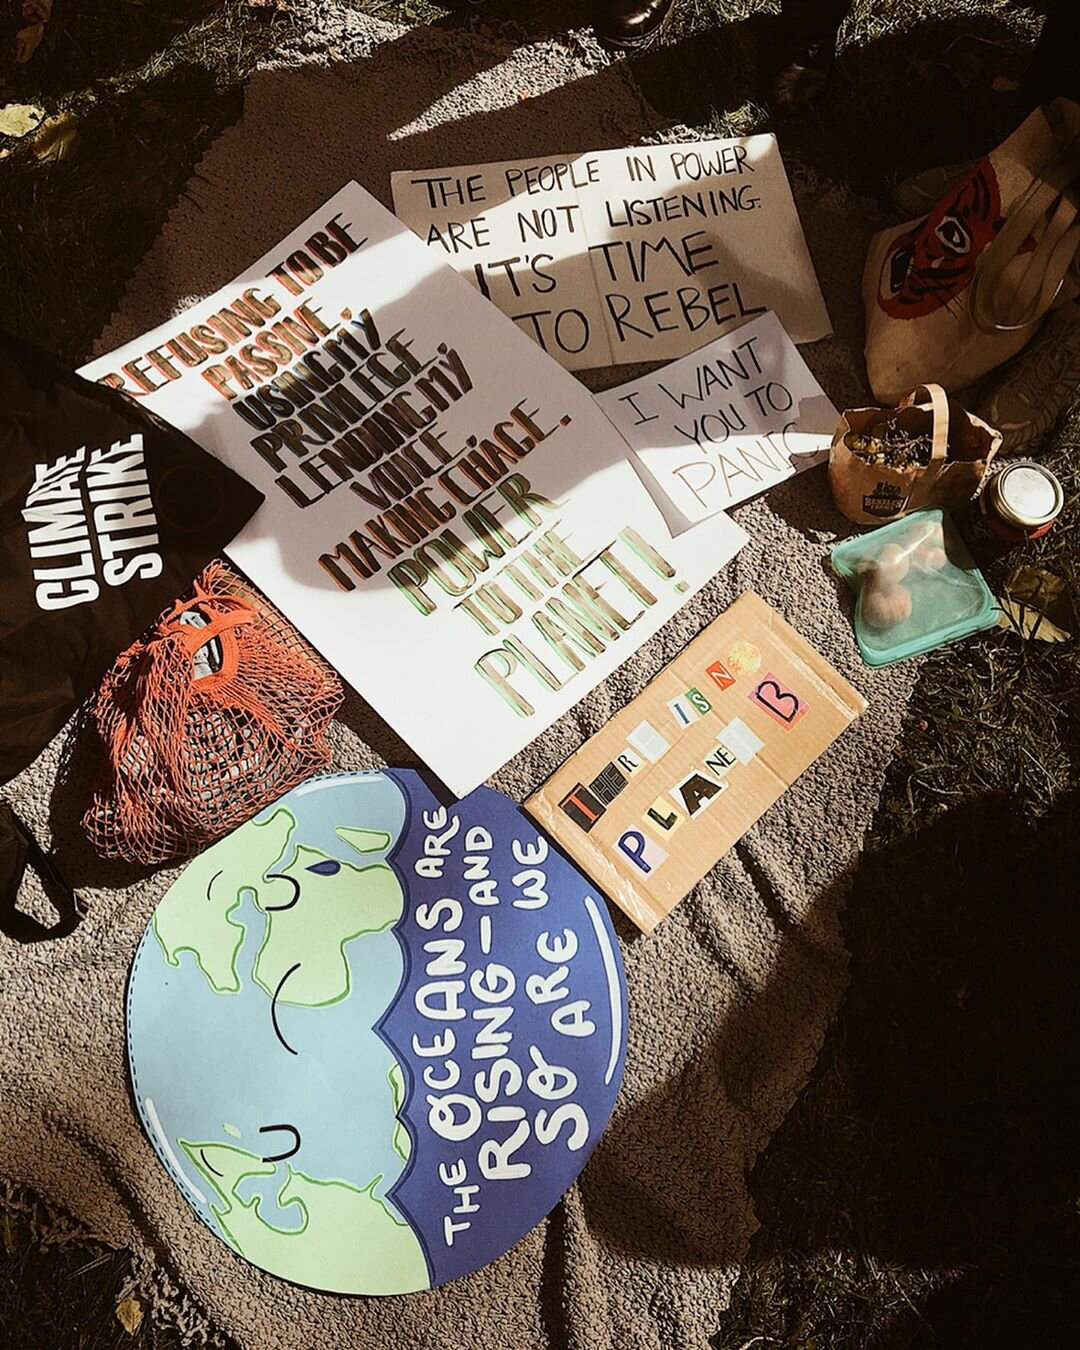 The Global Youth Climate Strike